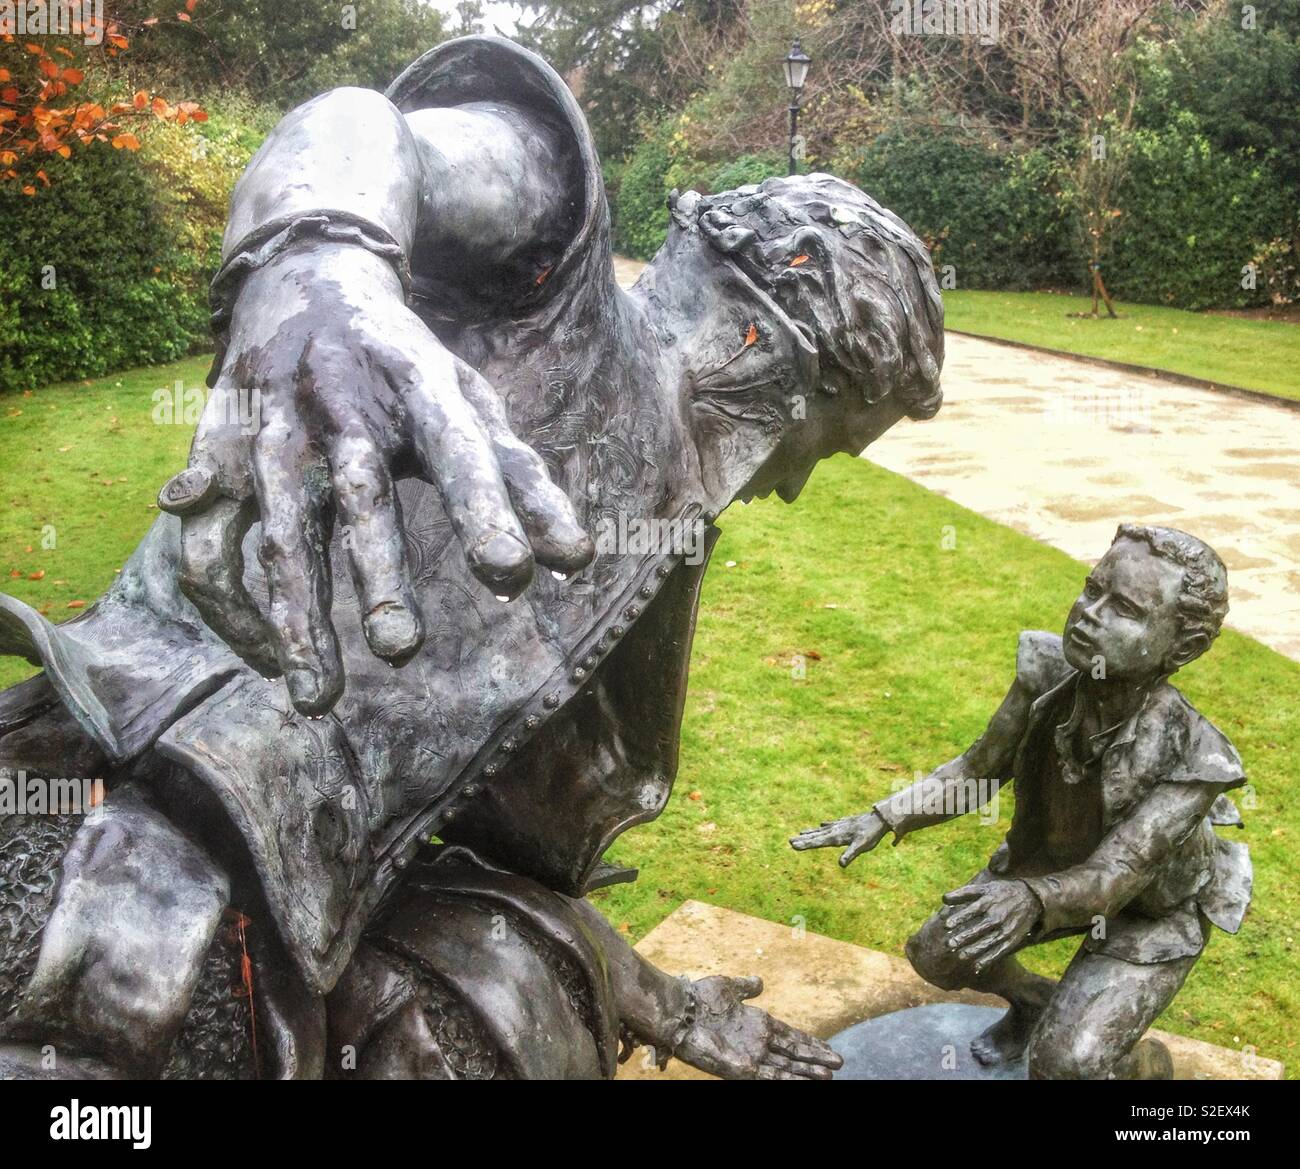 Detail of the sculpture of Edward Alleyn, Elizabethan actor and entrepreneur, in the gardens of Dulwich College almshouses, London - Stock Image